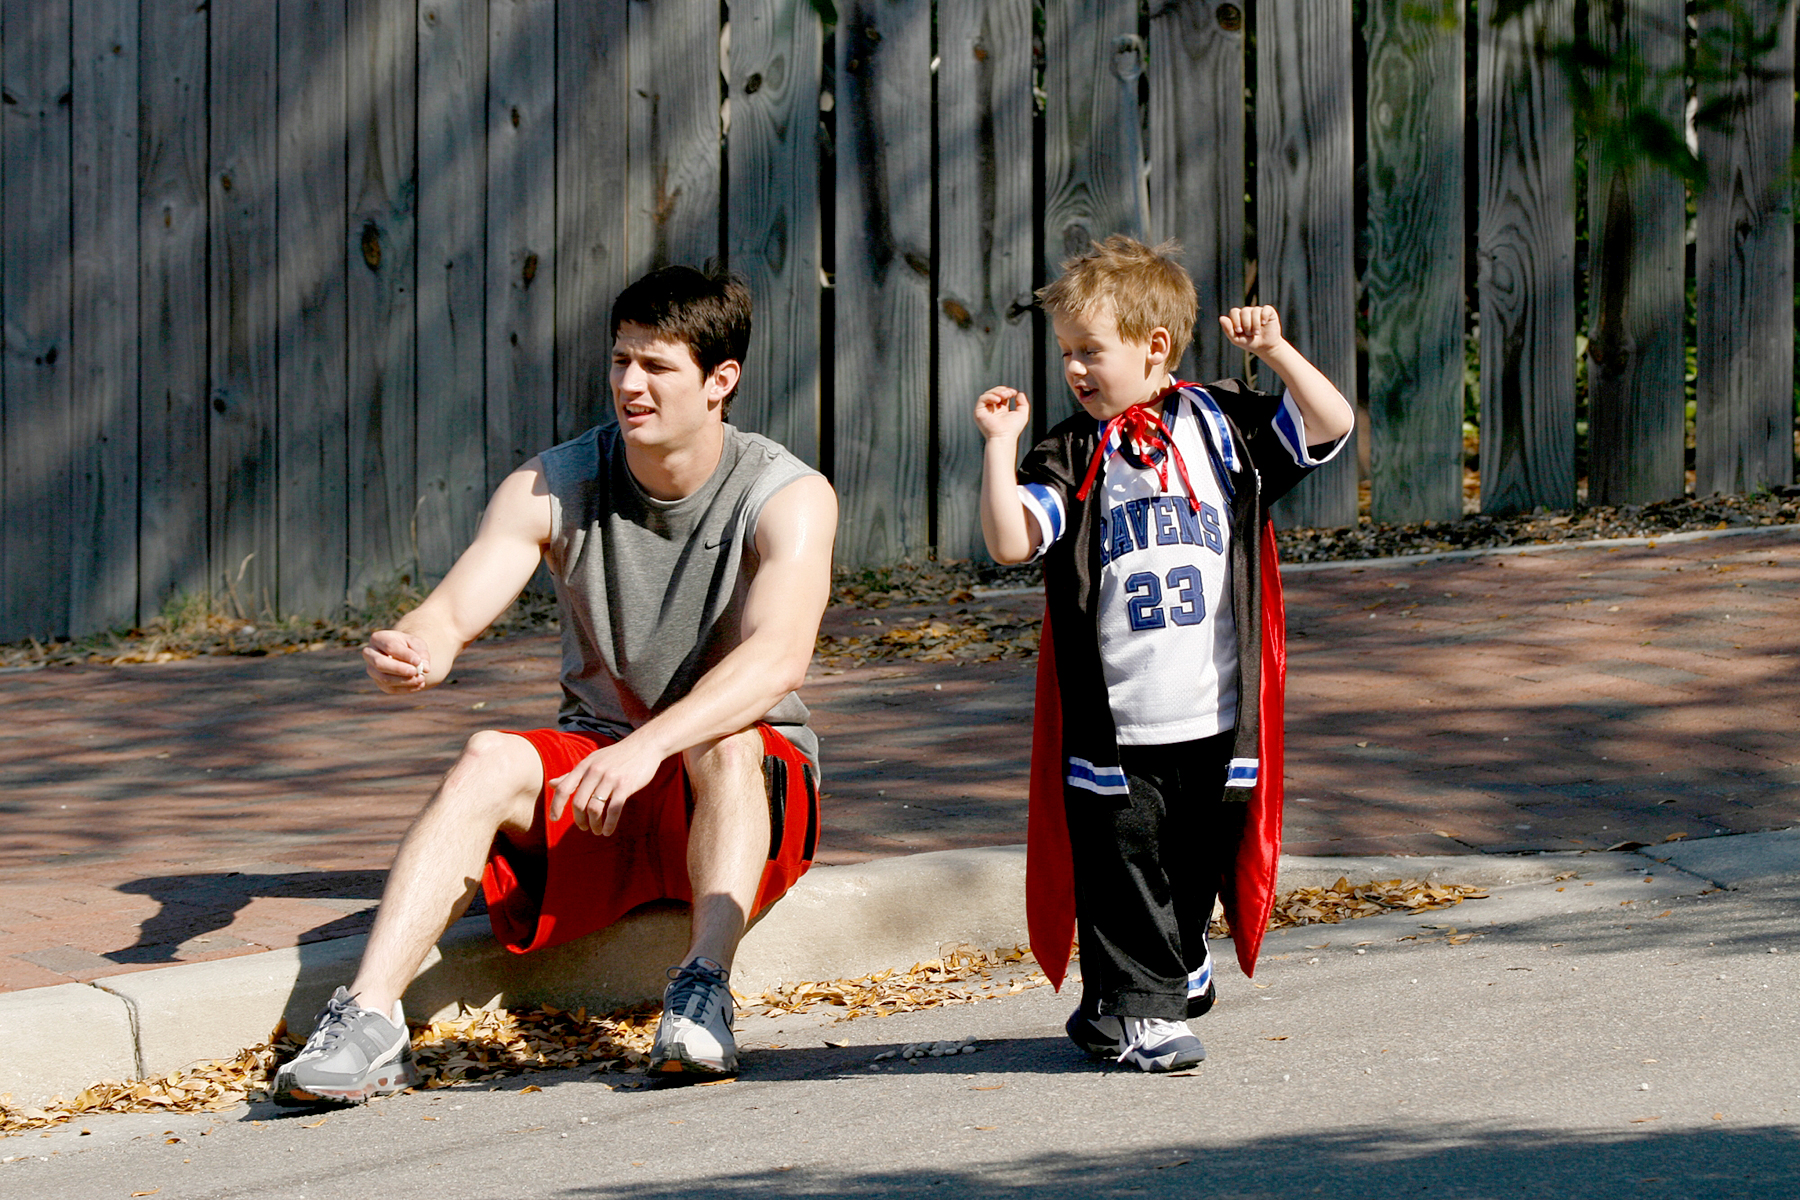 James-Lafferty-one-tree-hill - James Lafferty as Nathan and Jackson Brundage as Jamie in One Tree Hill.